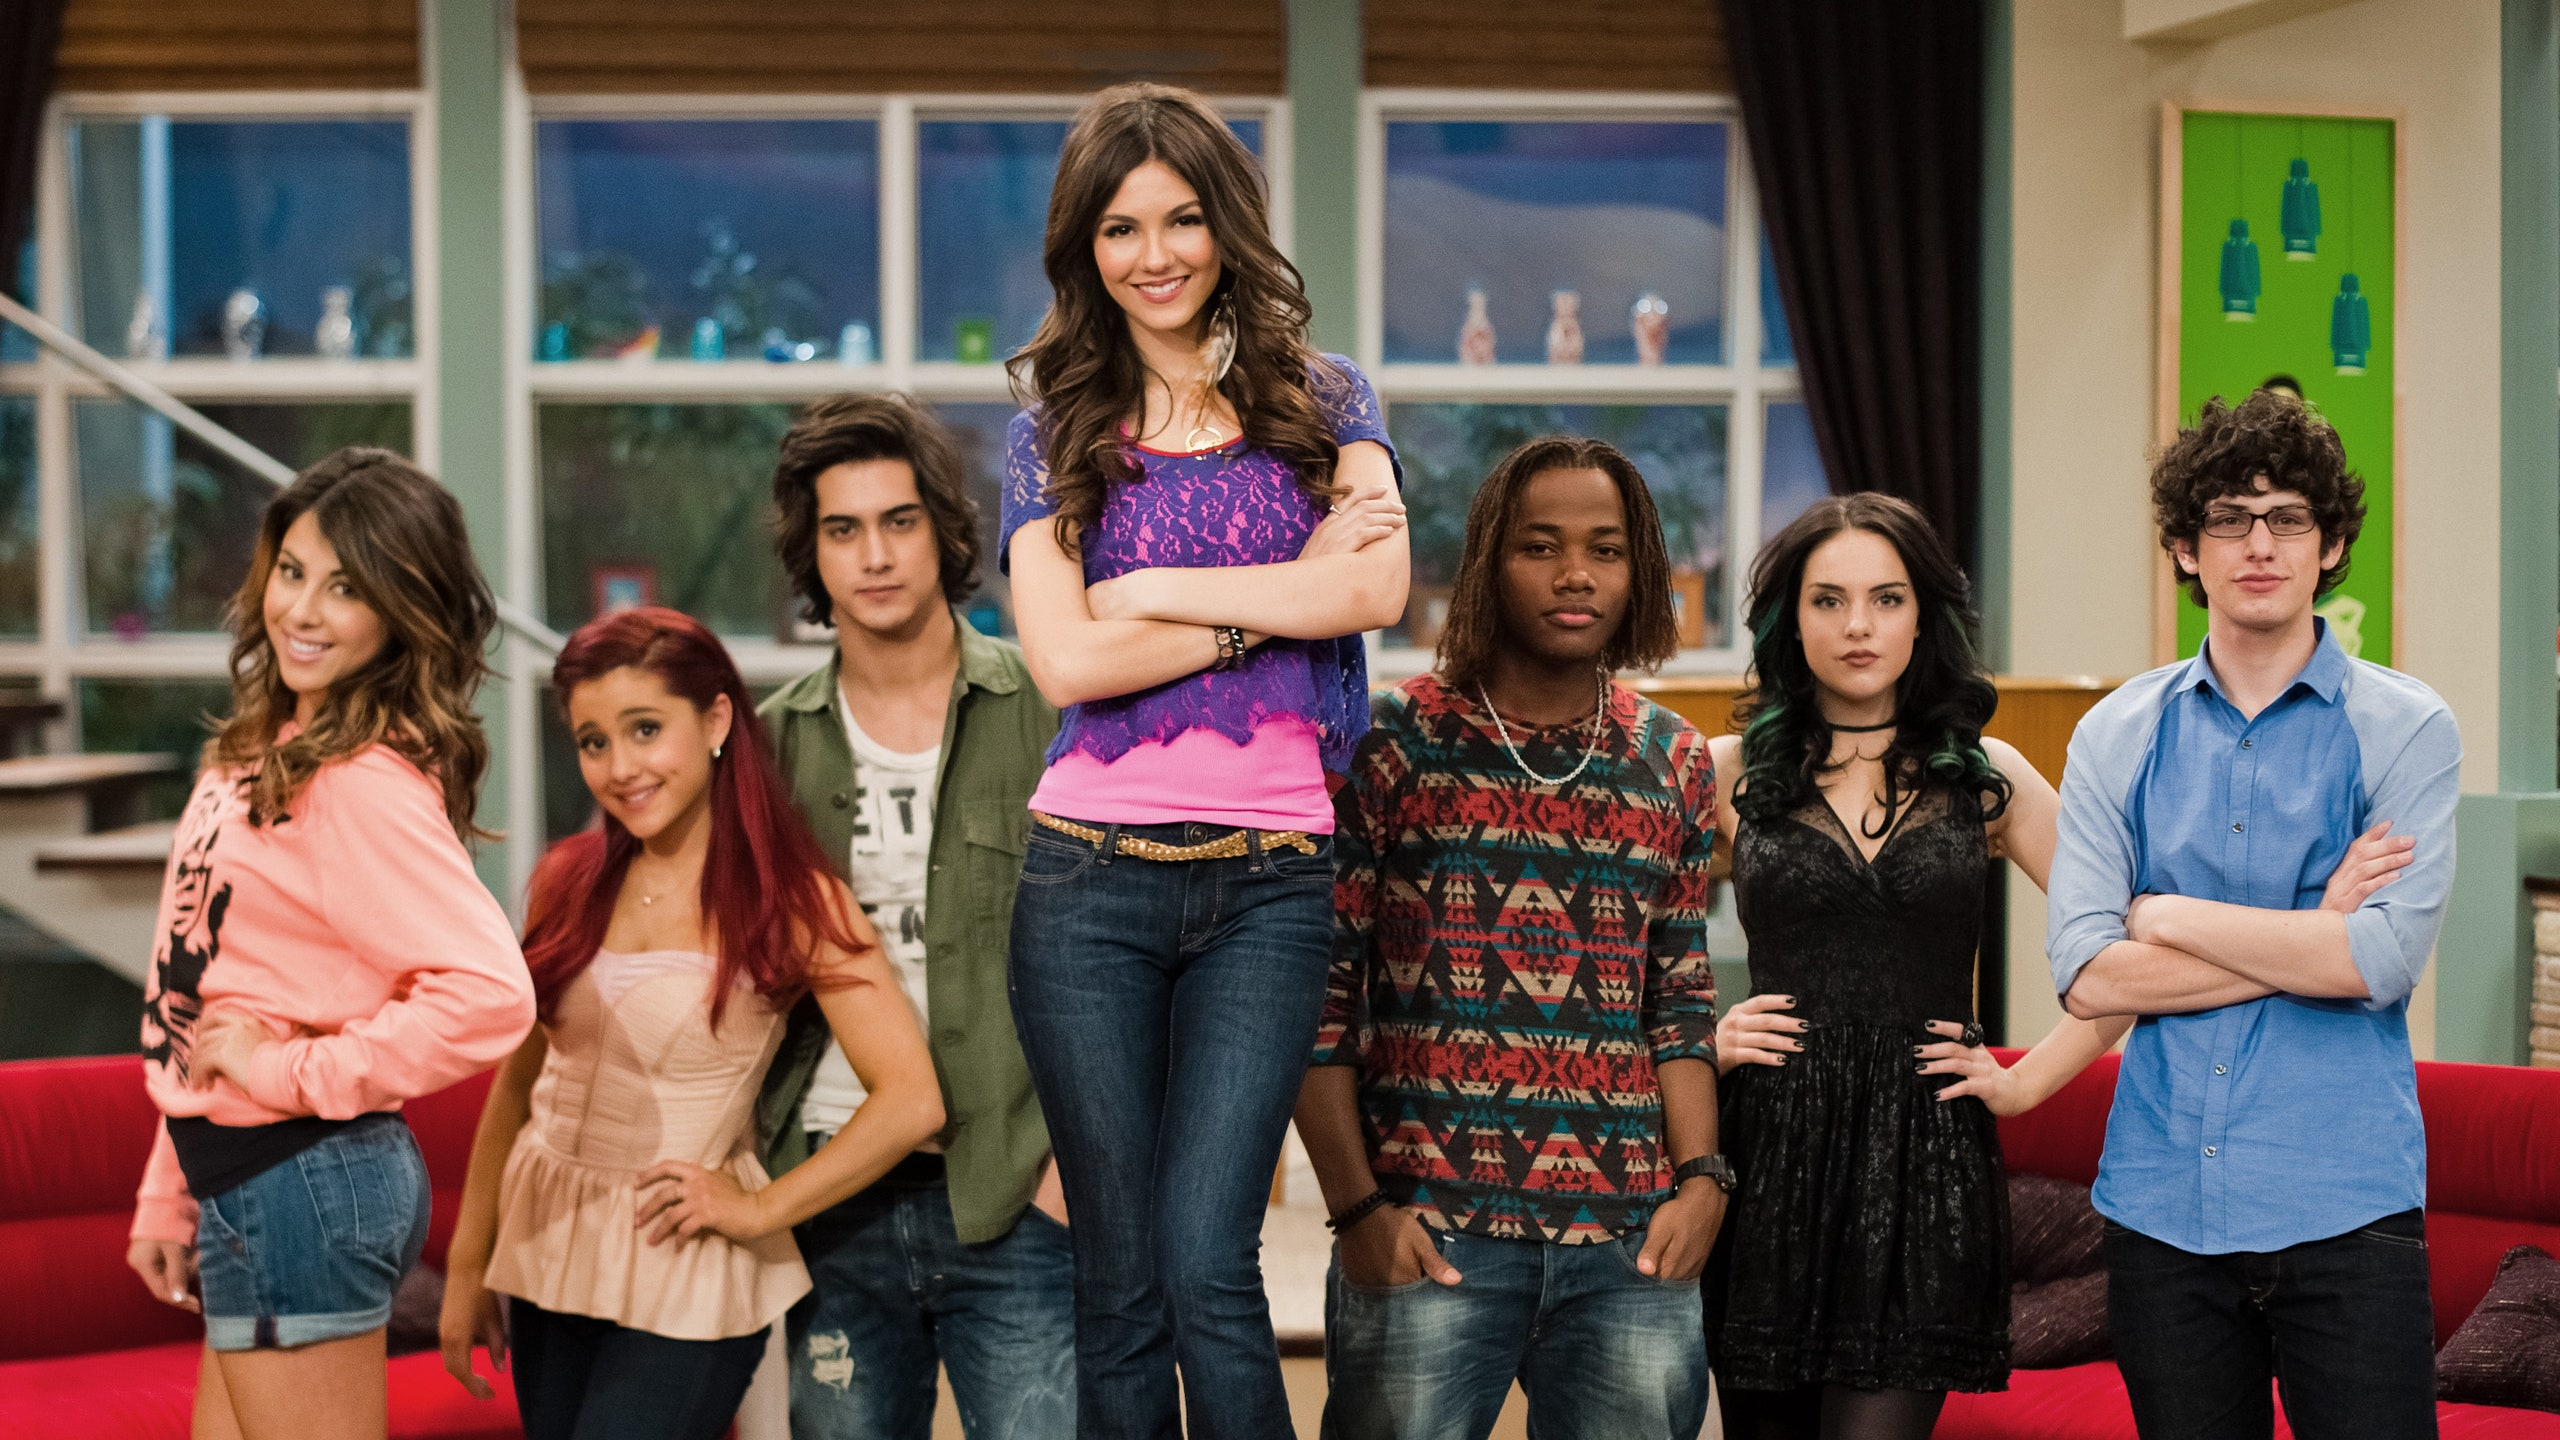 What's the name of the school all the main characters attended on the show